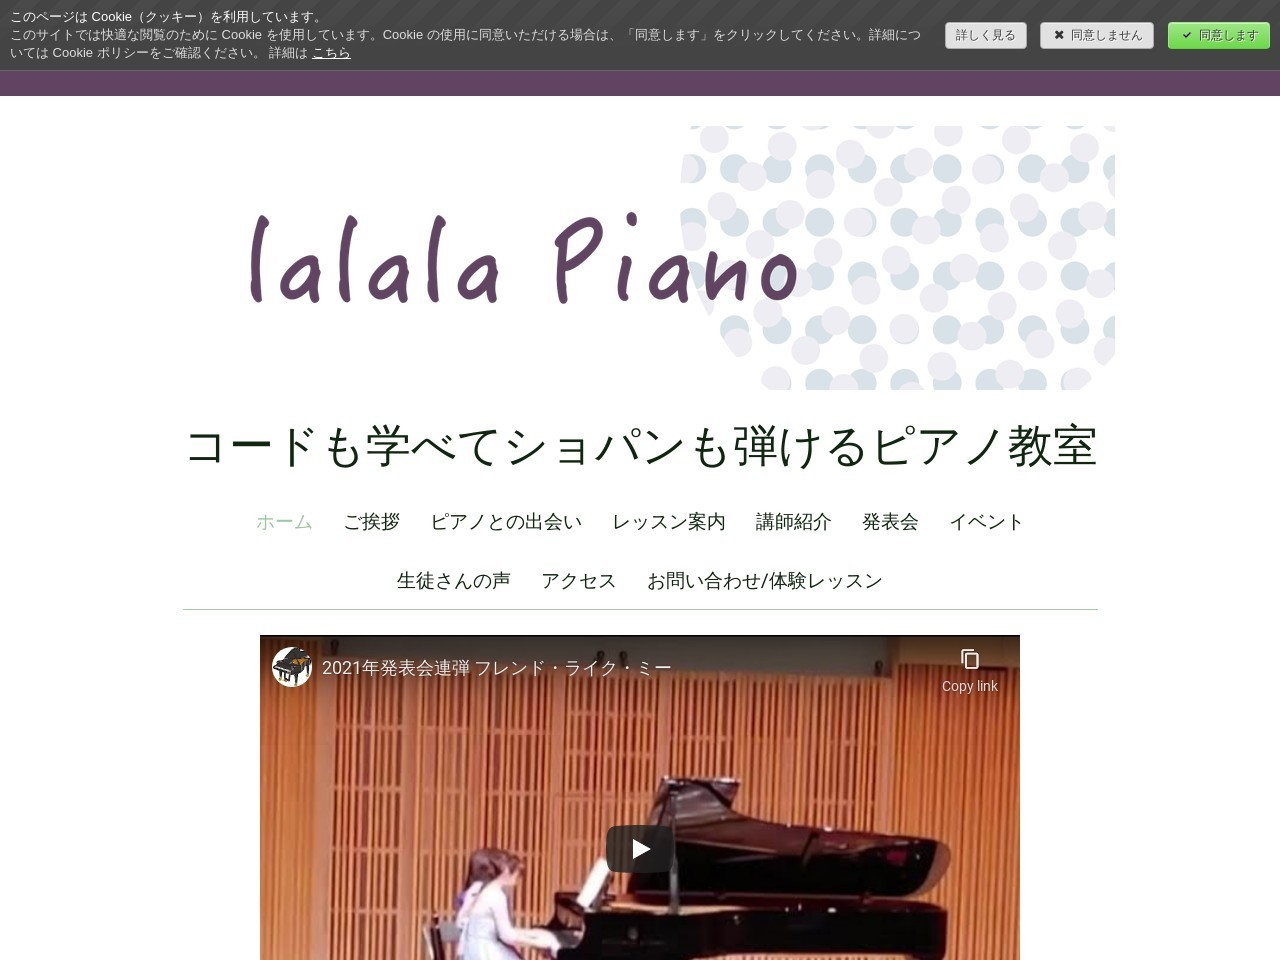 lalalapiano教室のサムネイル